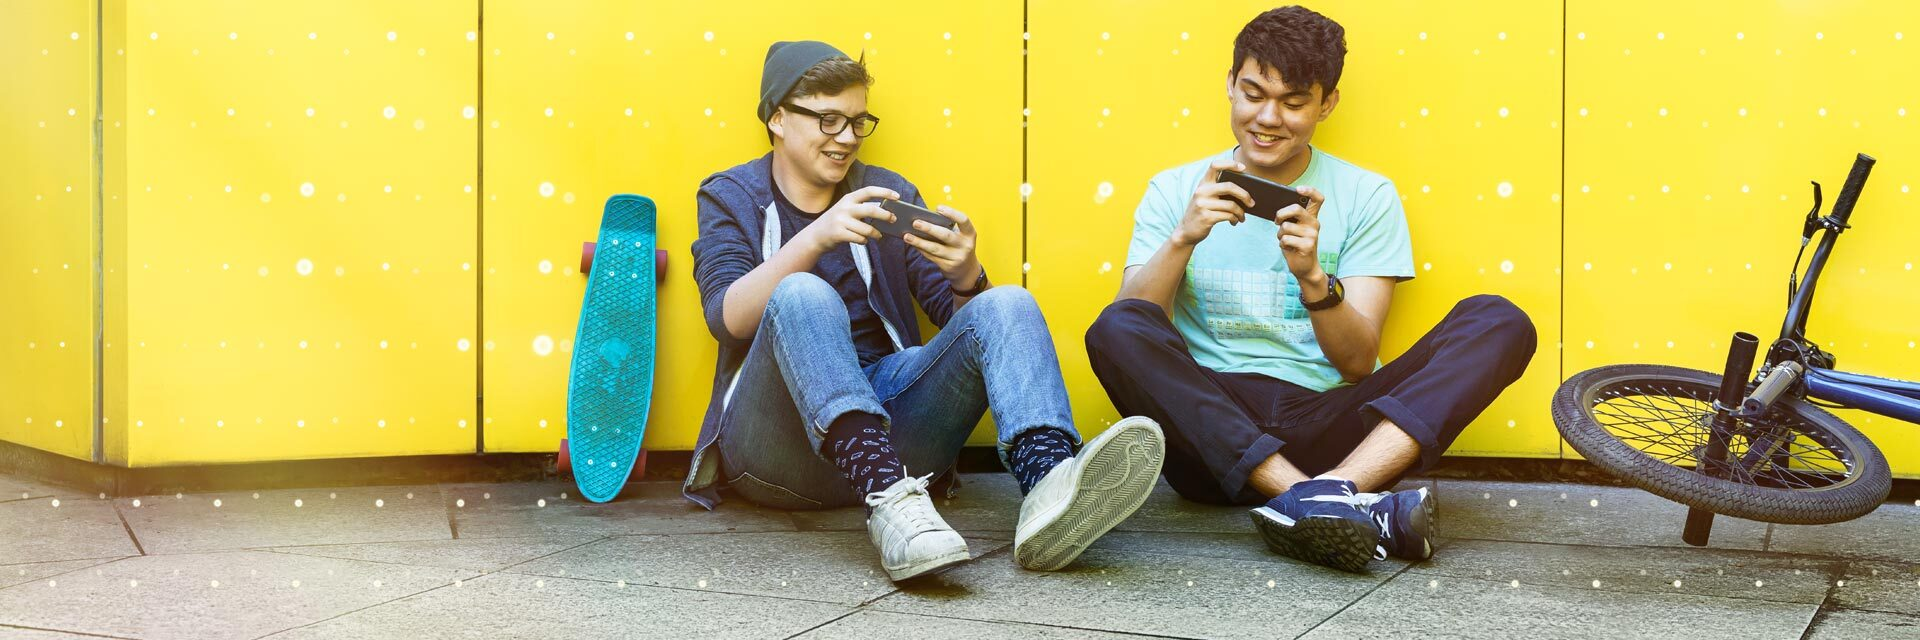 Two students playing a game on their smartphones